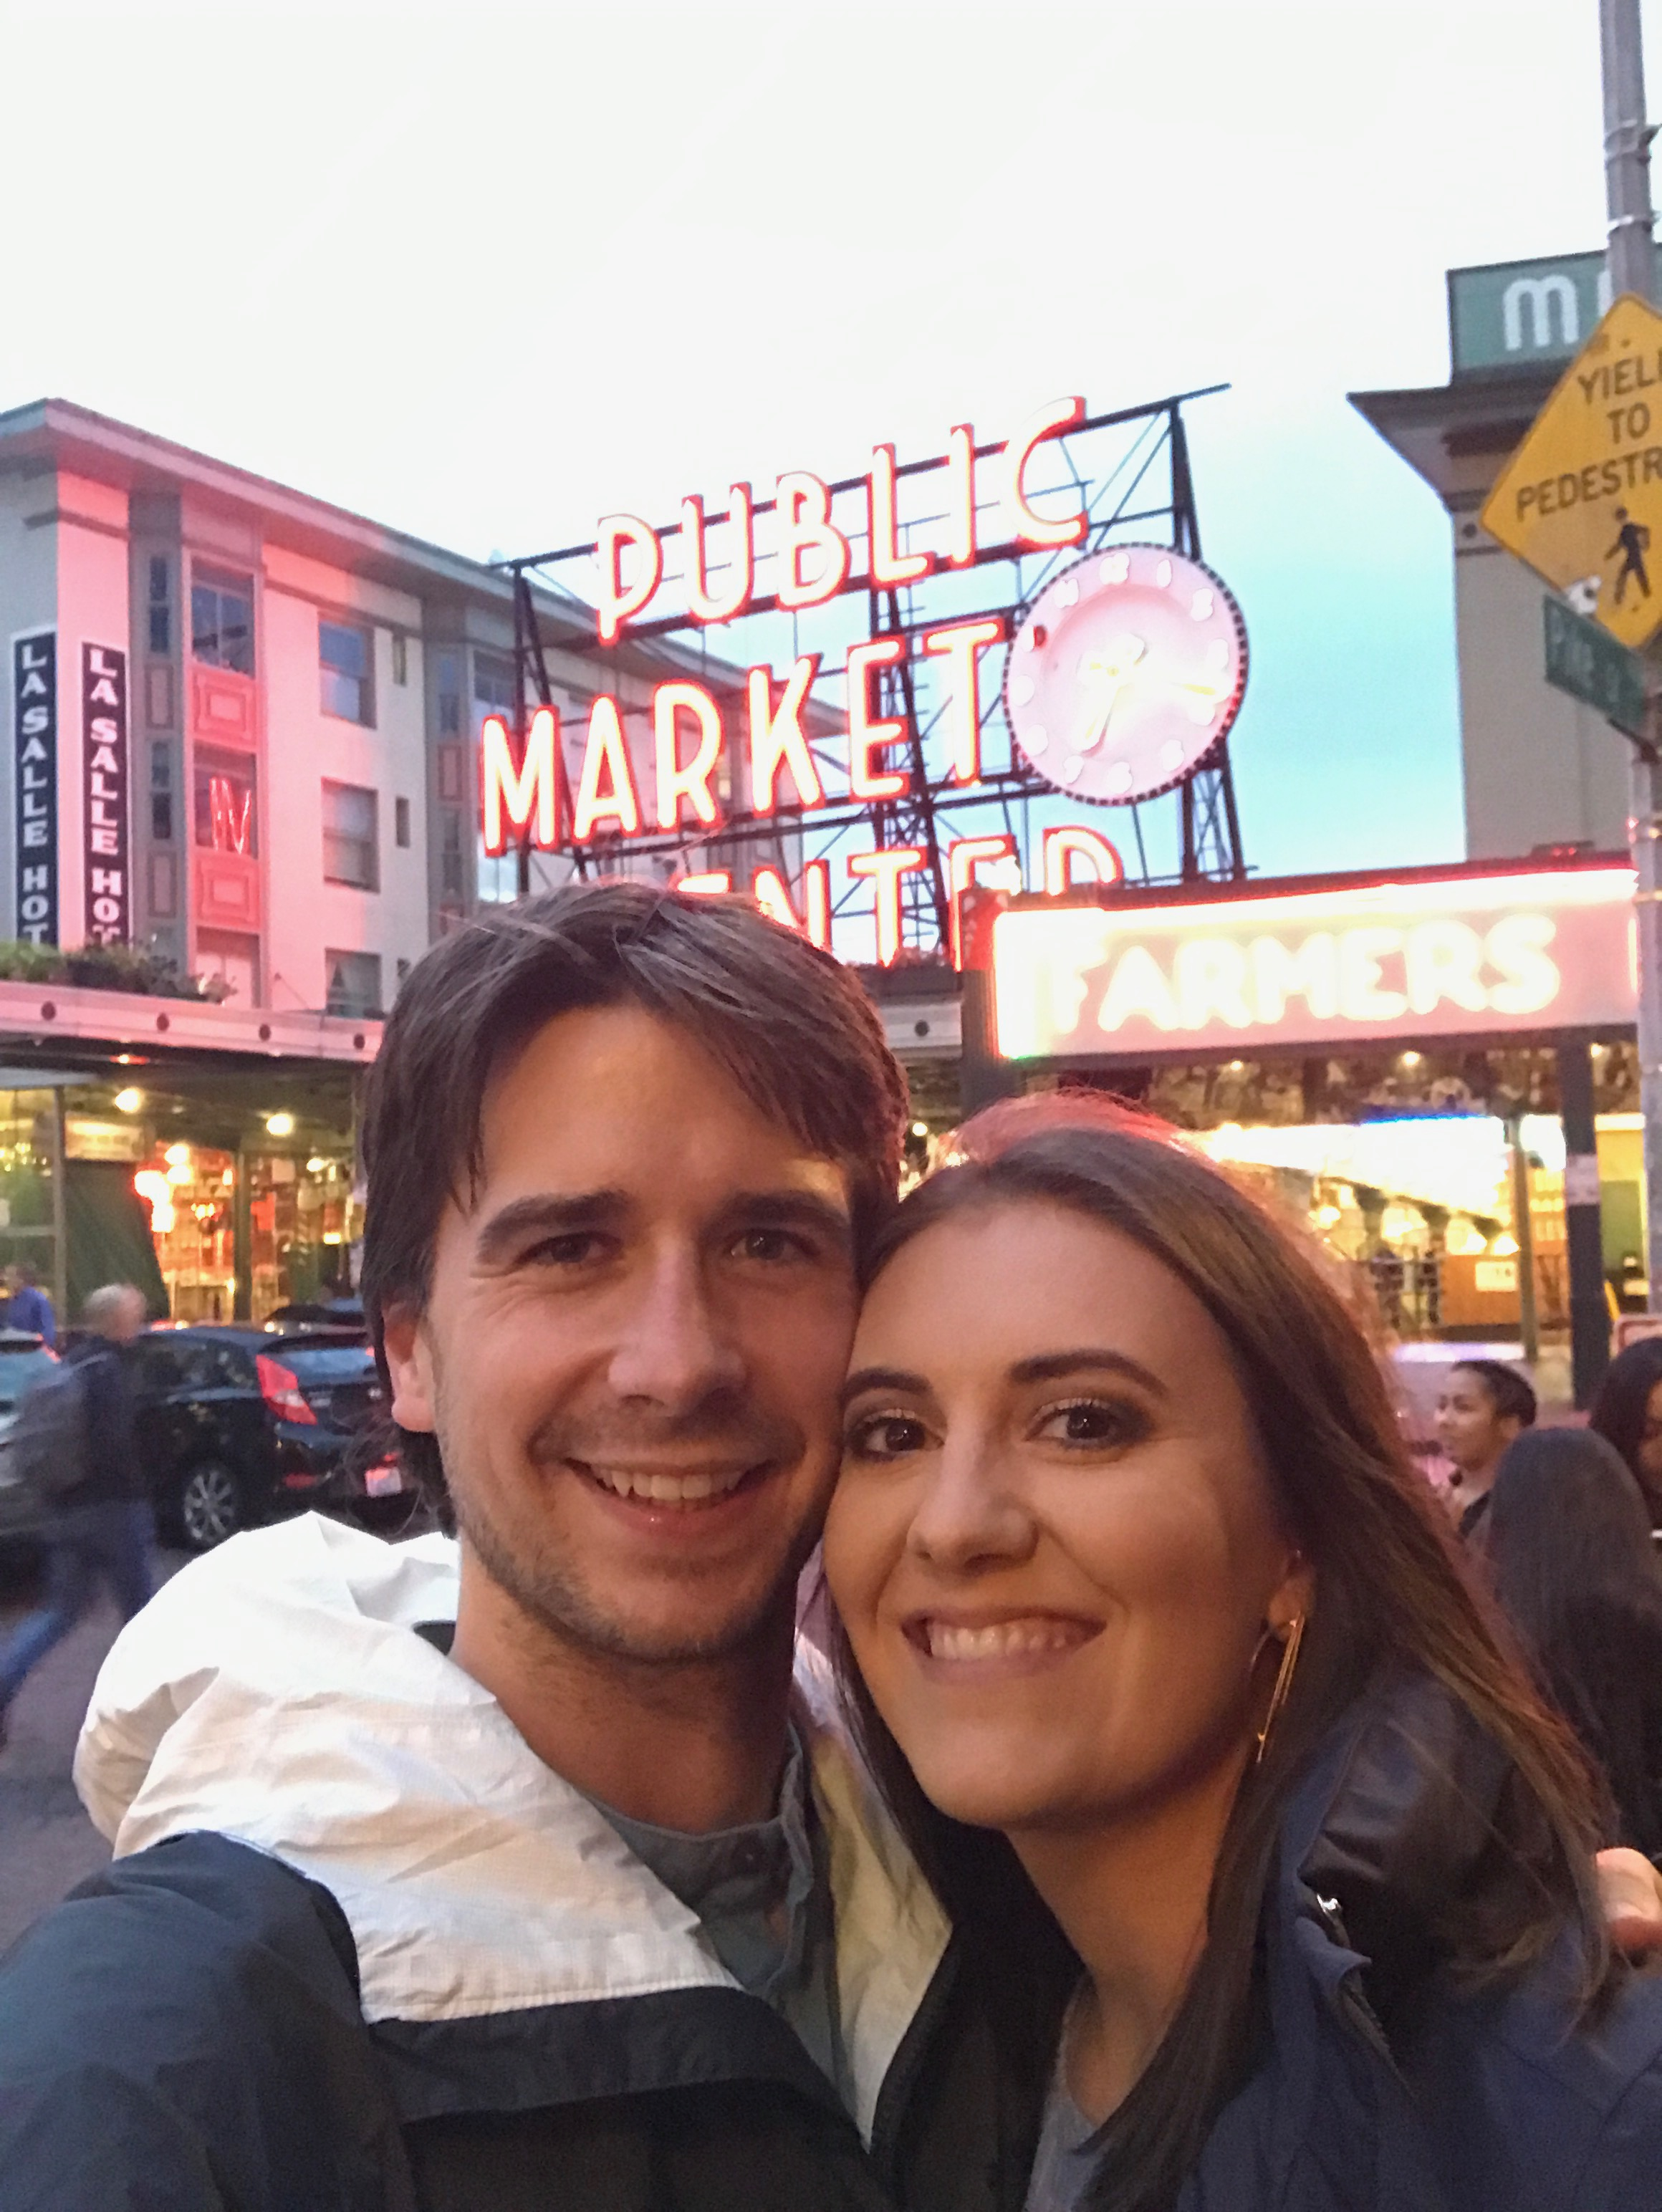 dinner at Pike place